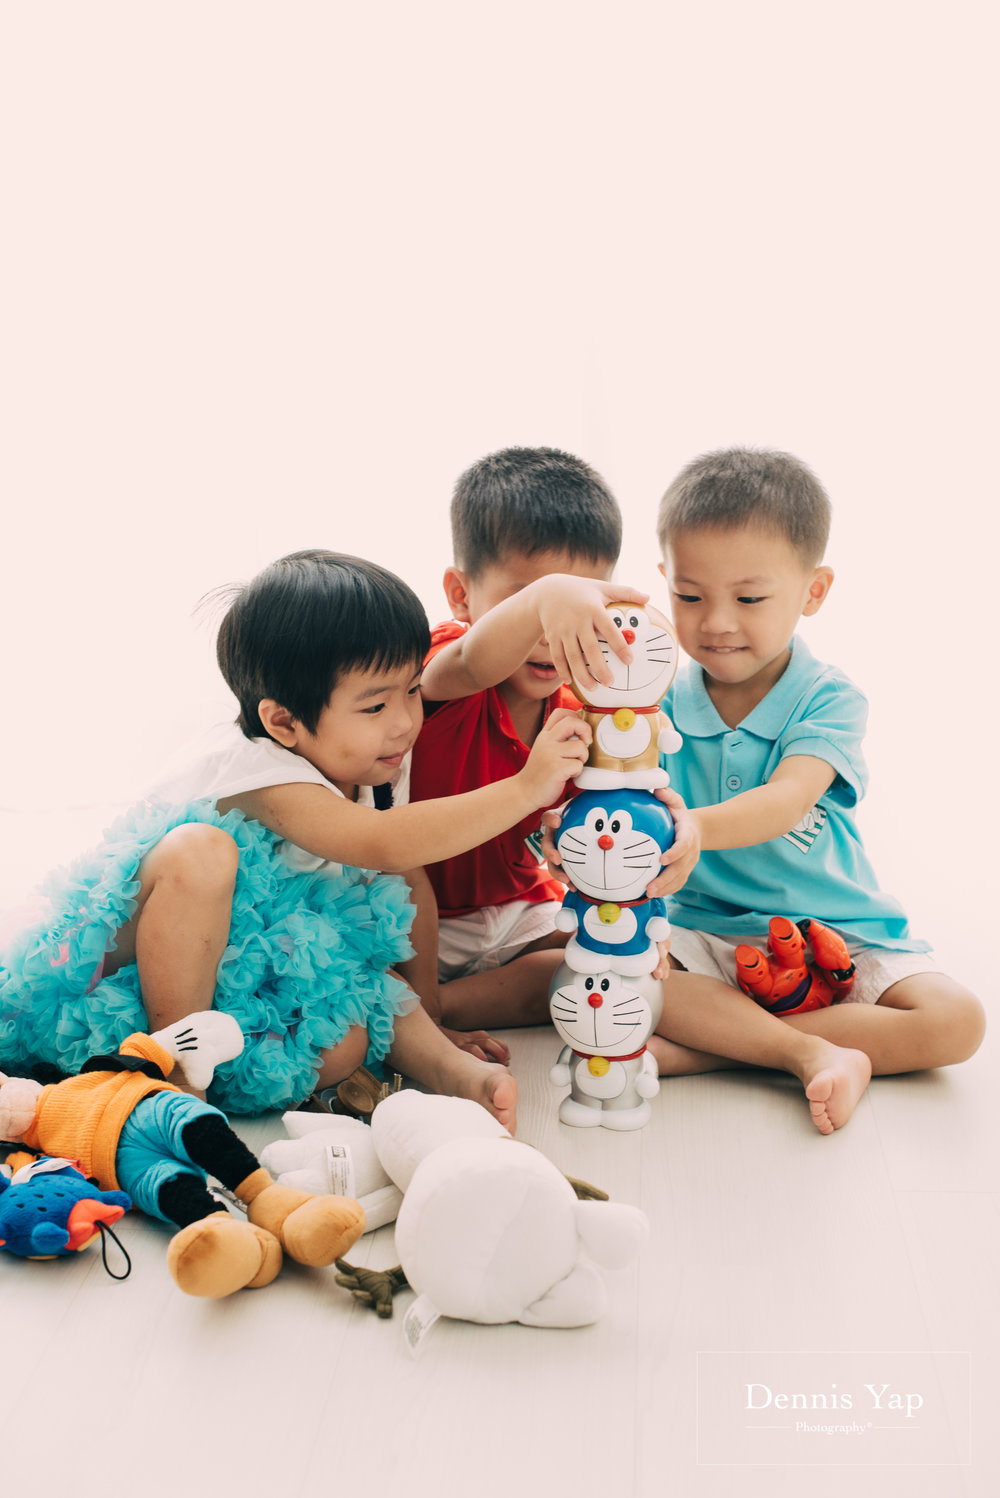 Choo Family portrait dennis yap photography white background-4.jpg